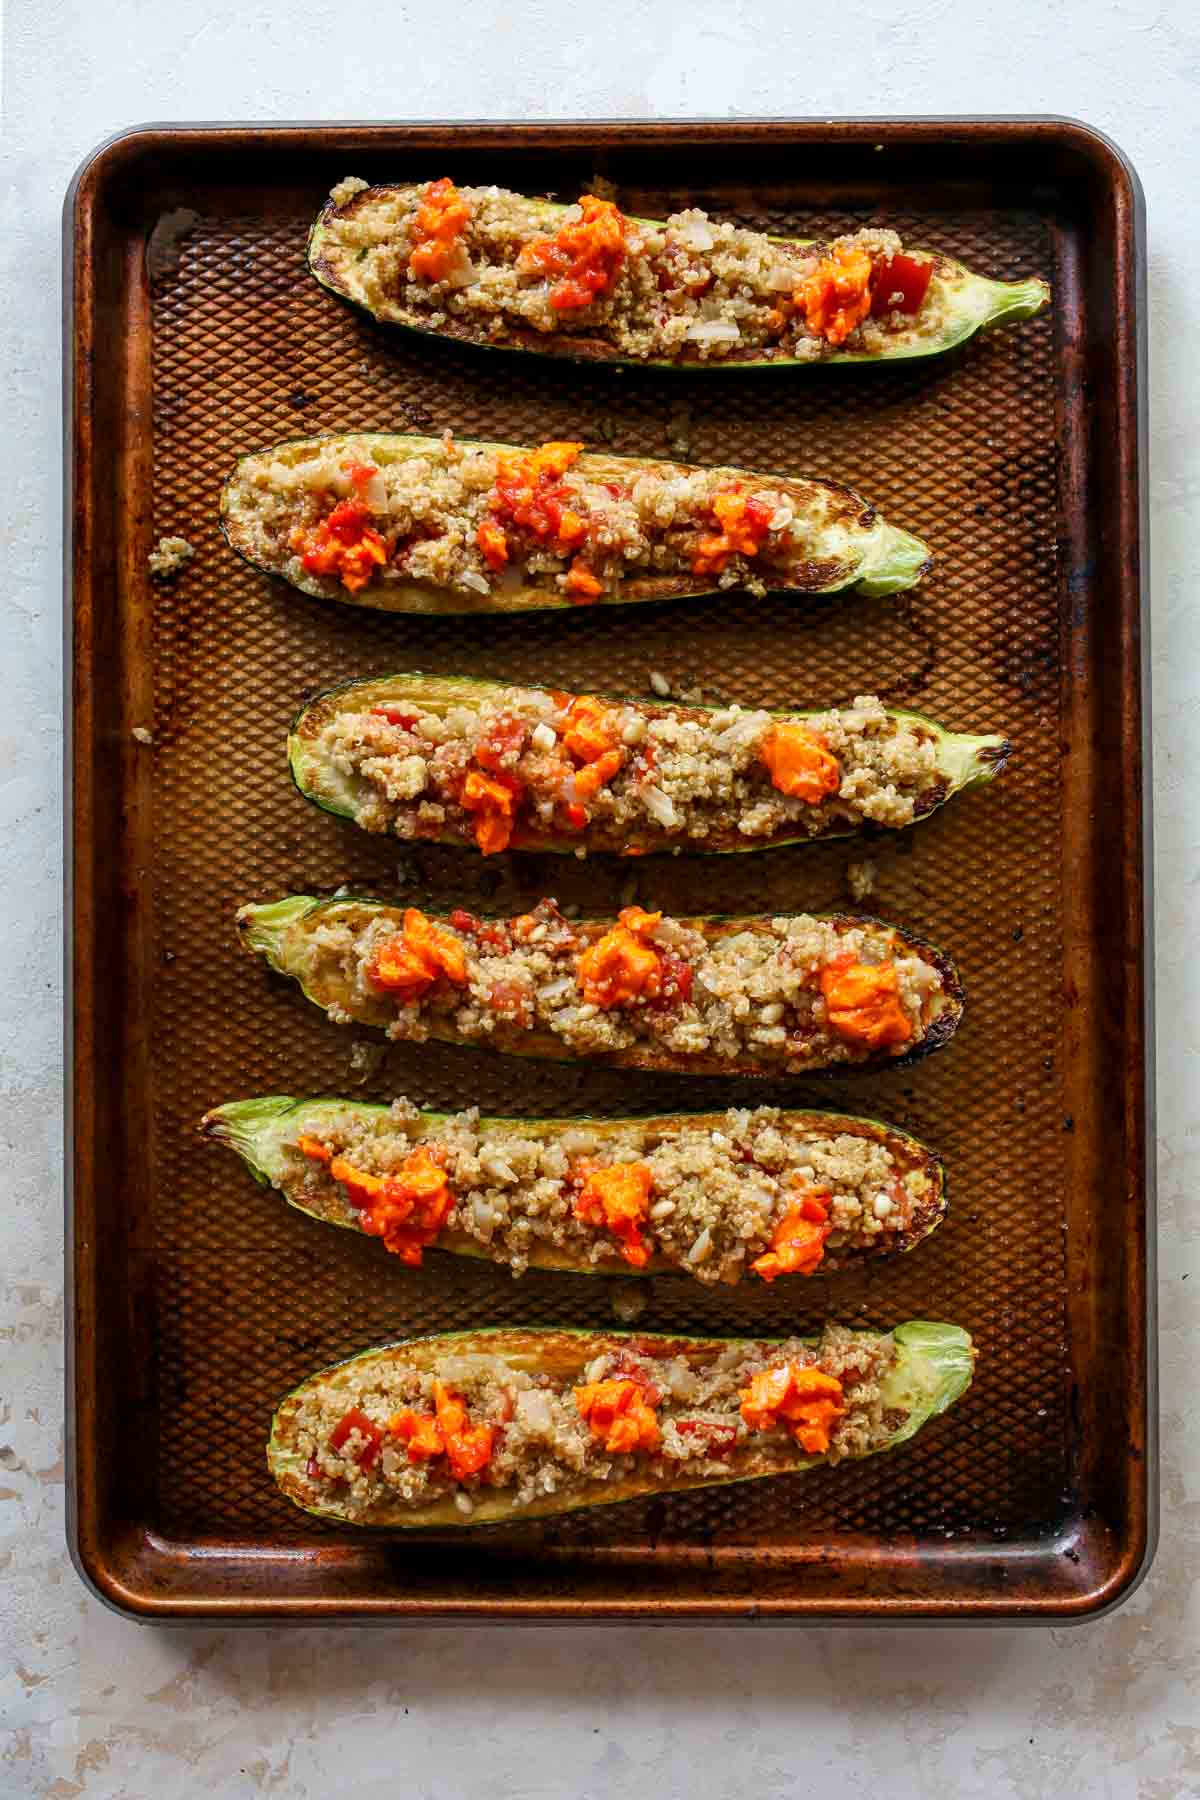 Zucchini boats being stuffed with quinoa mixture before baking